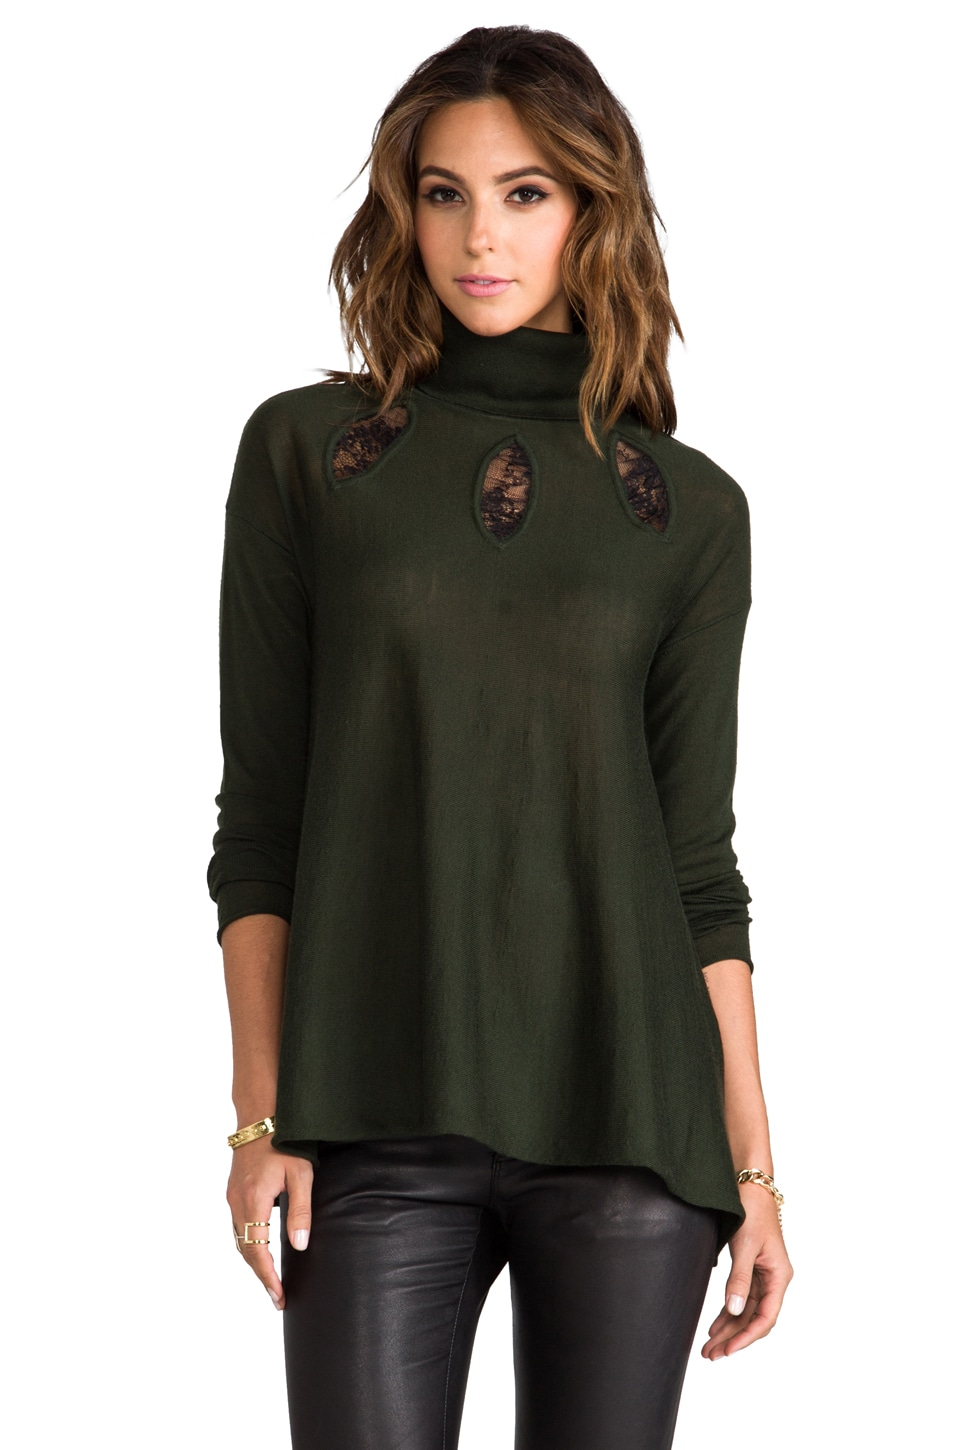 Catherine Malandrino Armada Wool Turtleneck Sweater in Evergreen/Noir